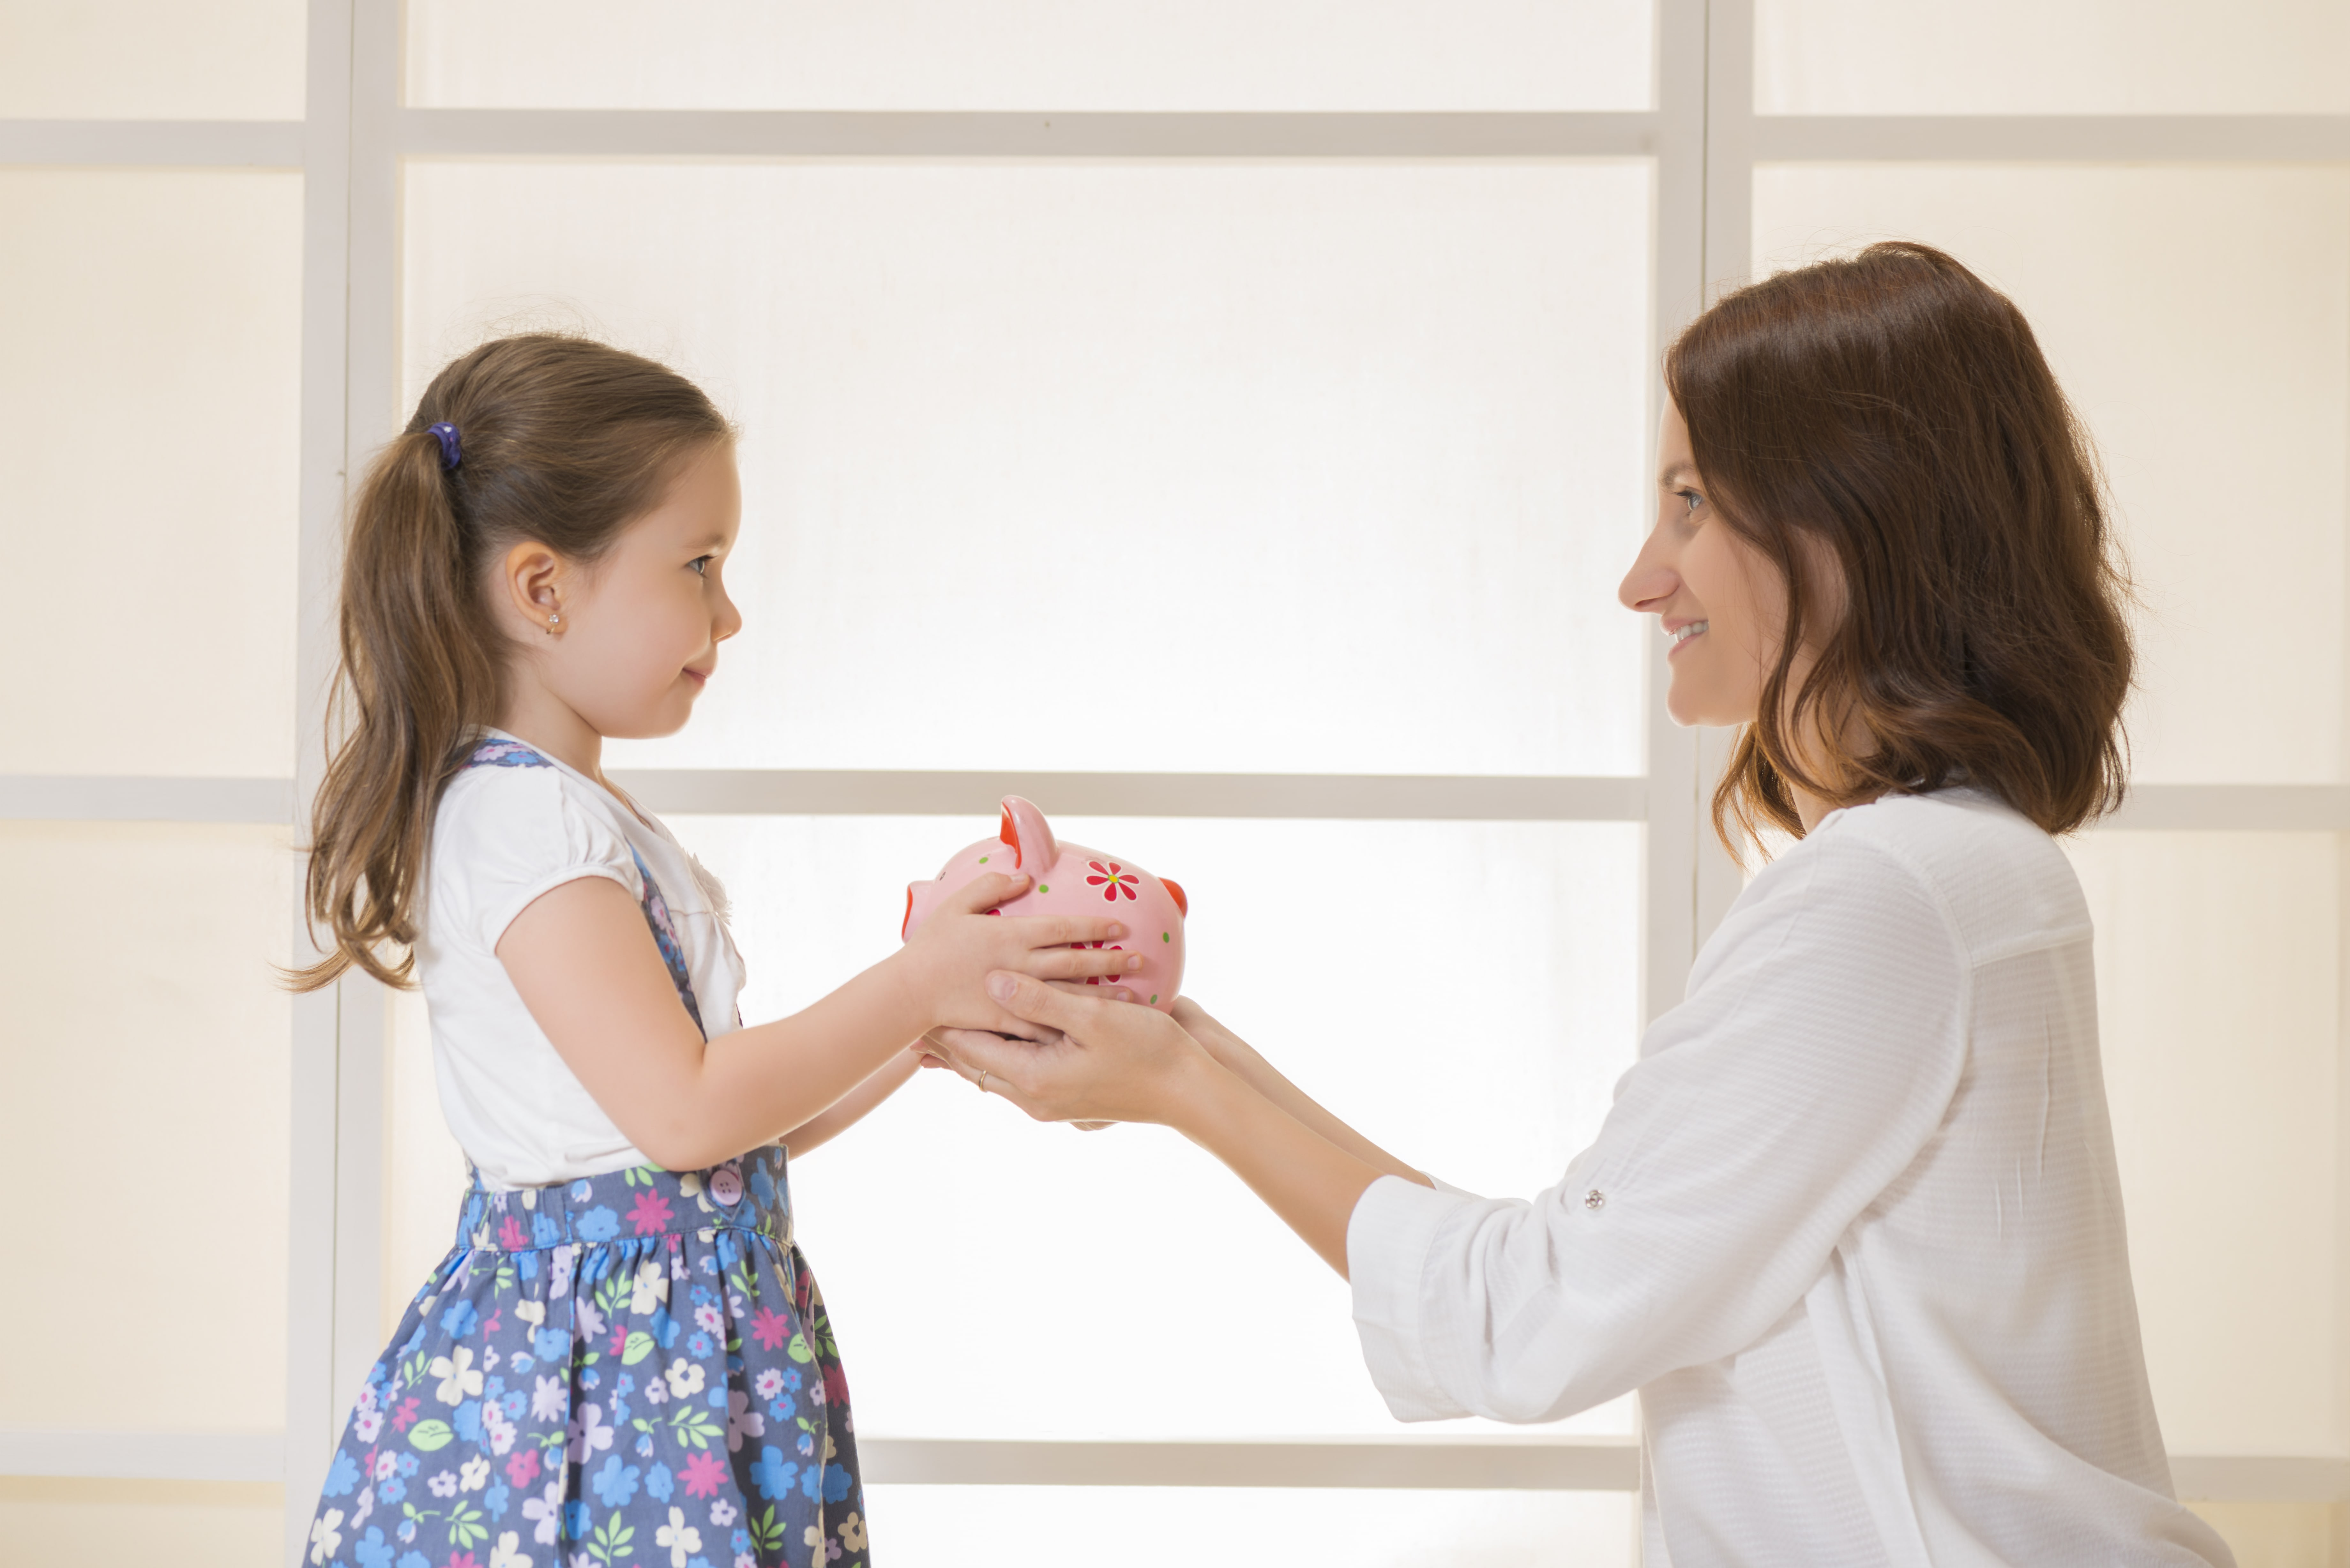 What Is the Best Financial Gift for a Child?